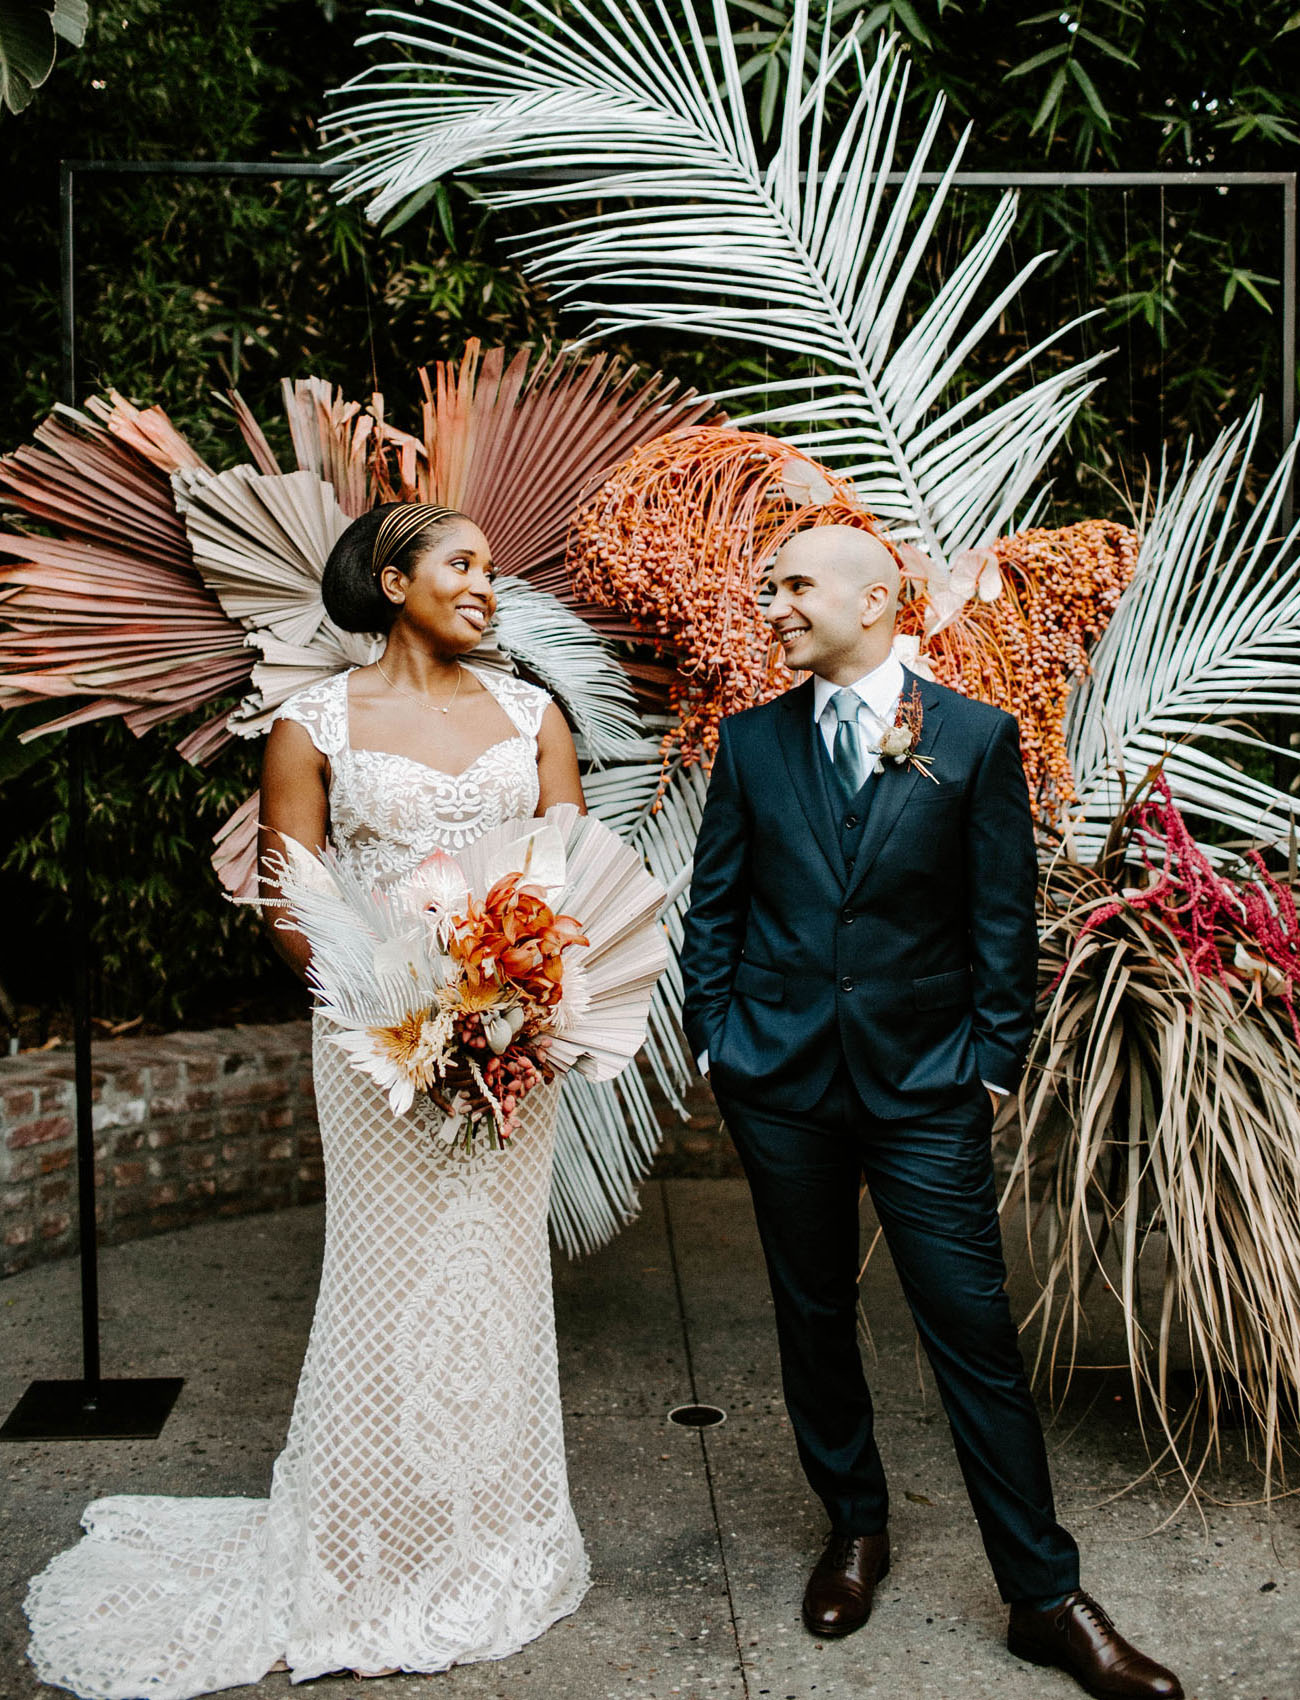 This bold couple went for a tropical refined wedding in downtown LA